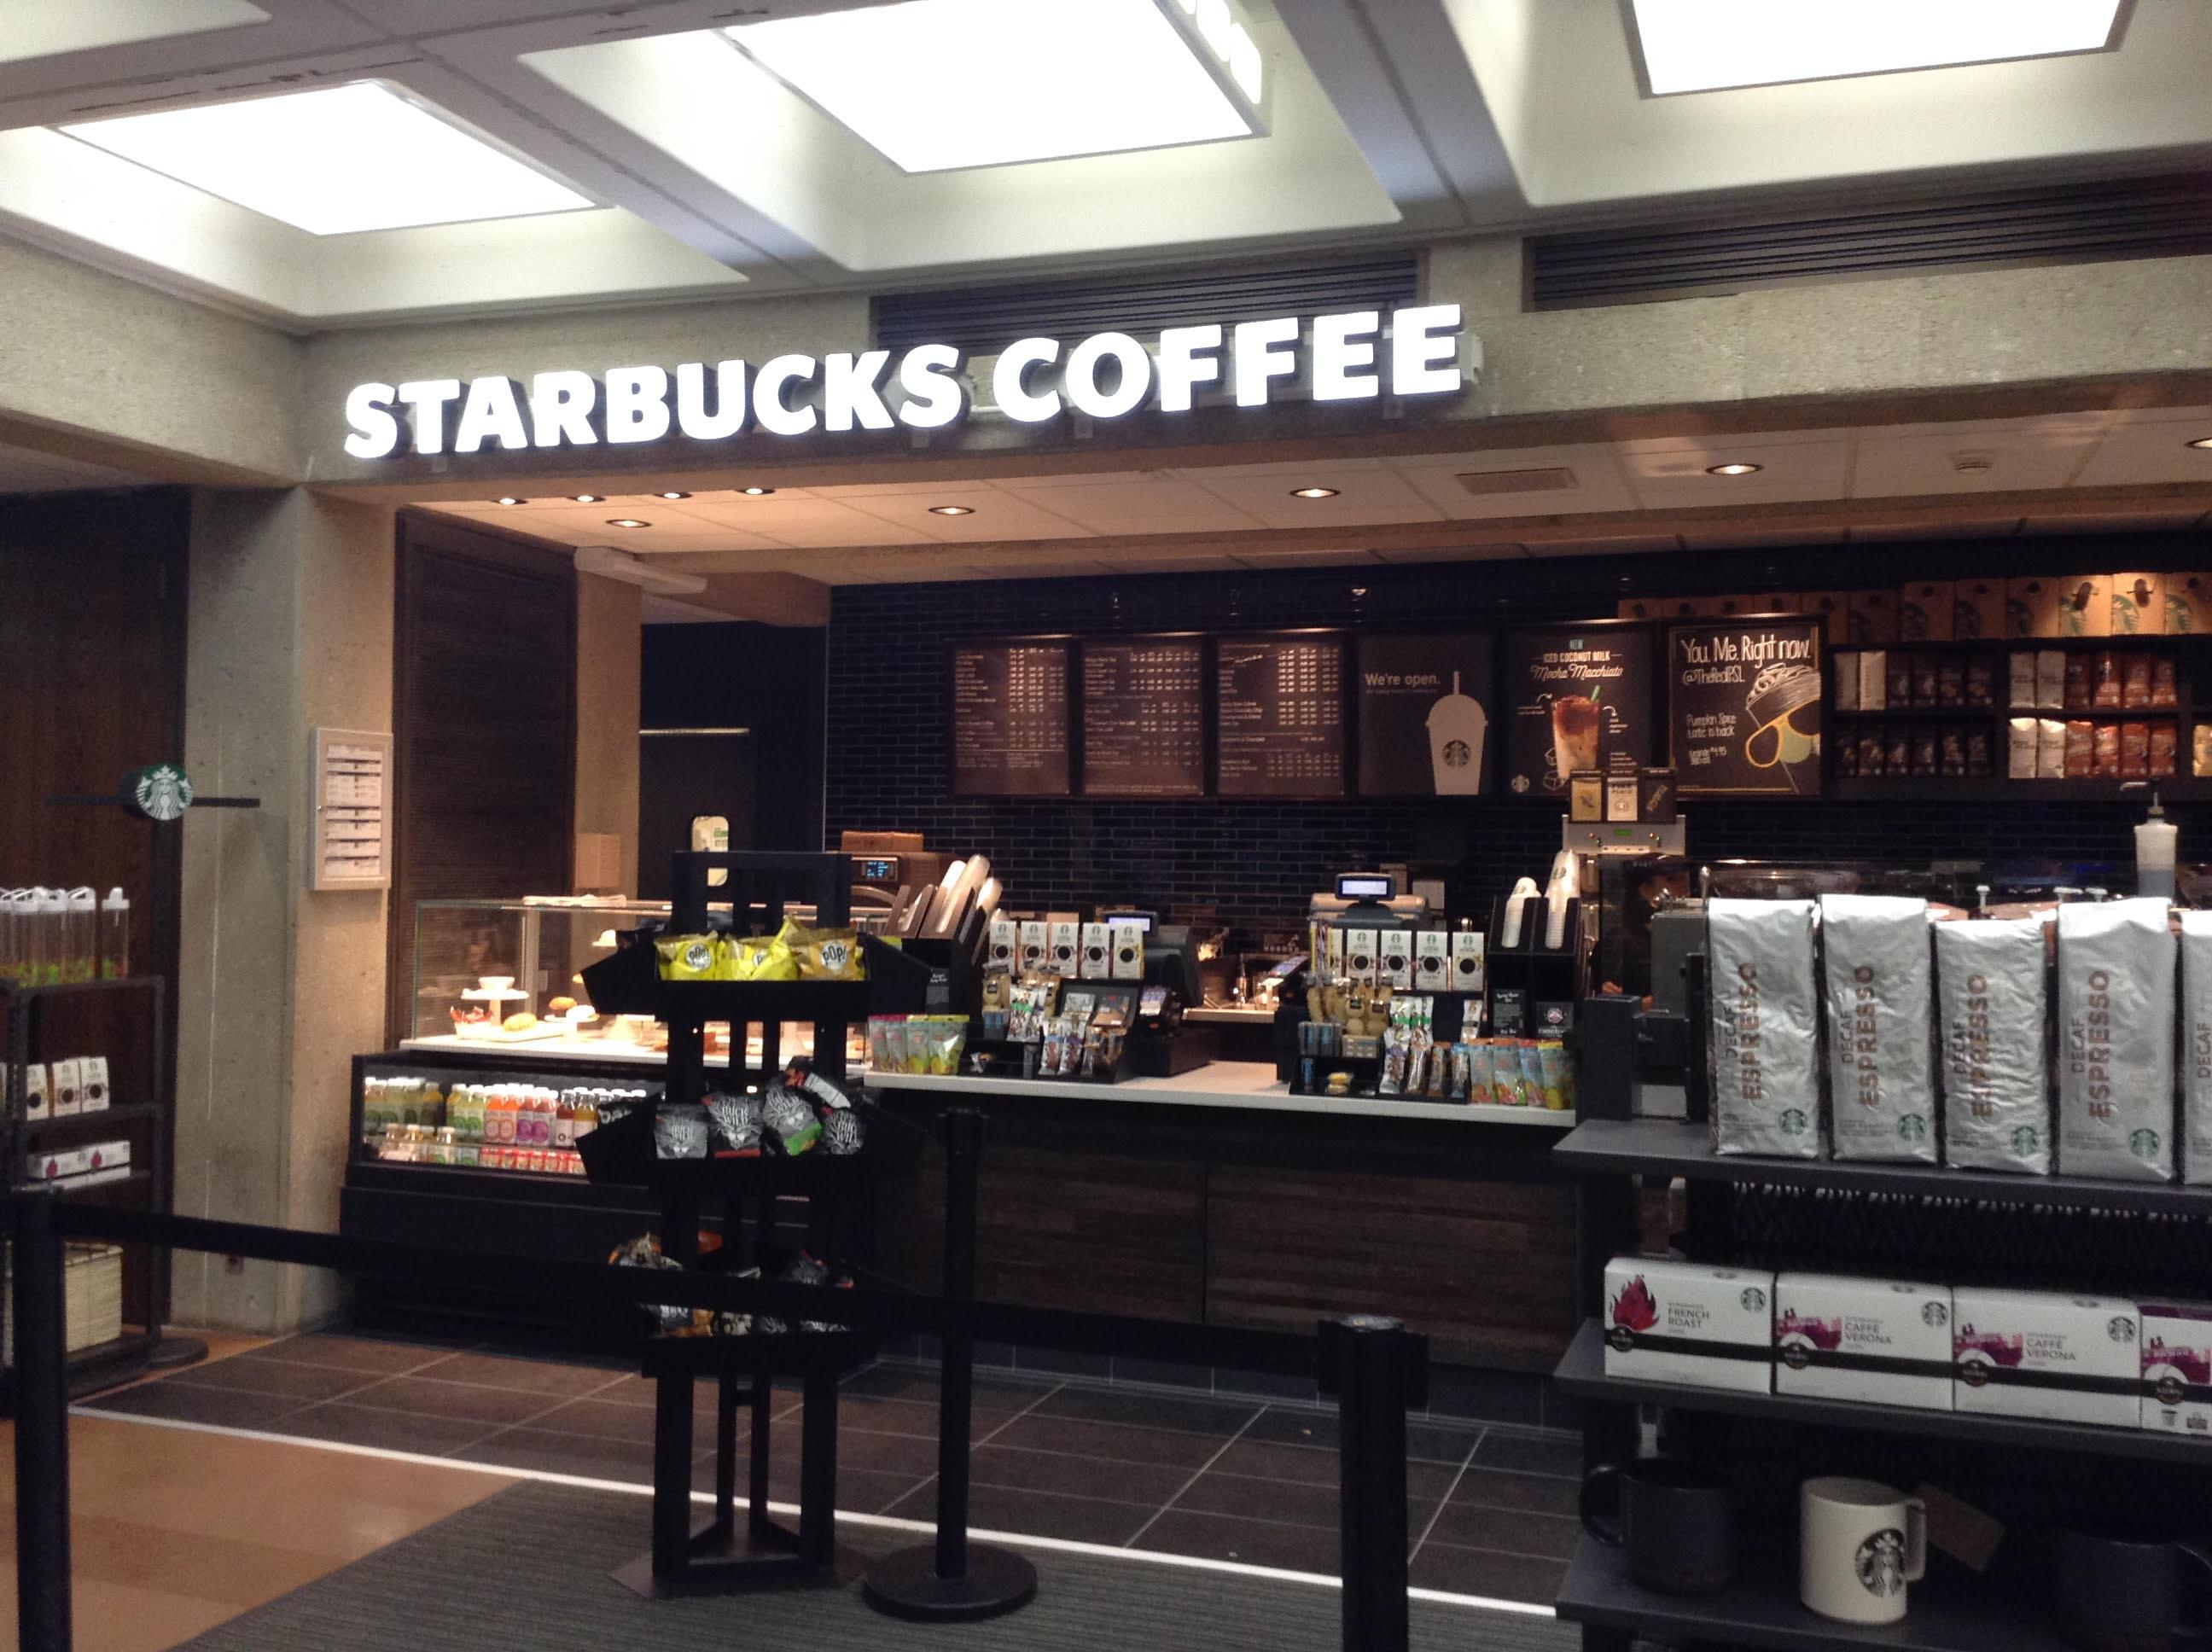 A new Starbucks is located in Bierce Library.